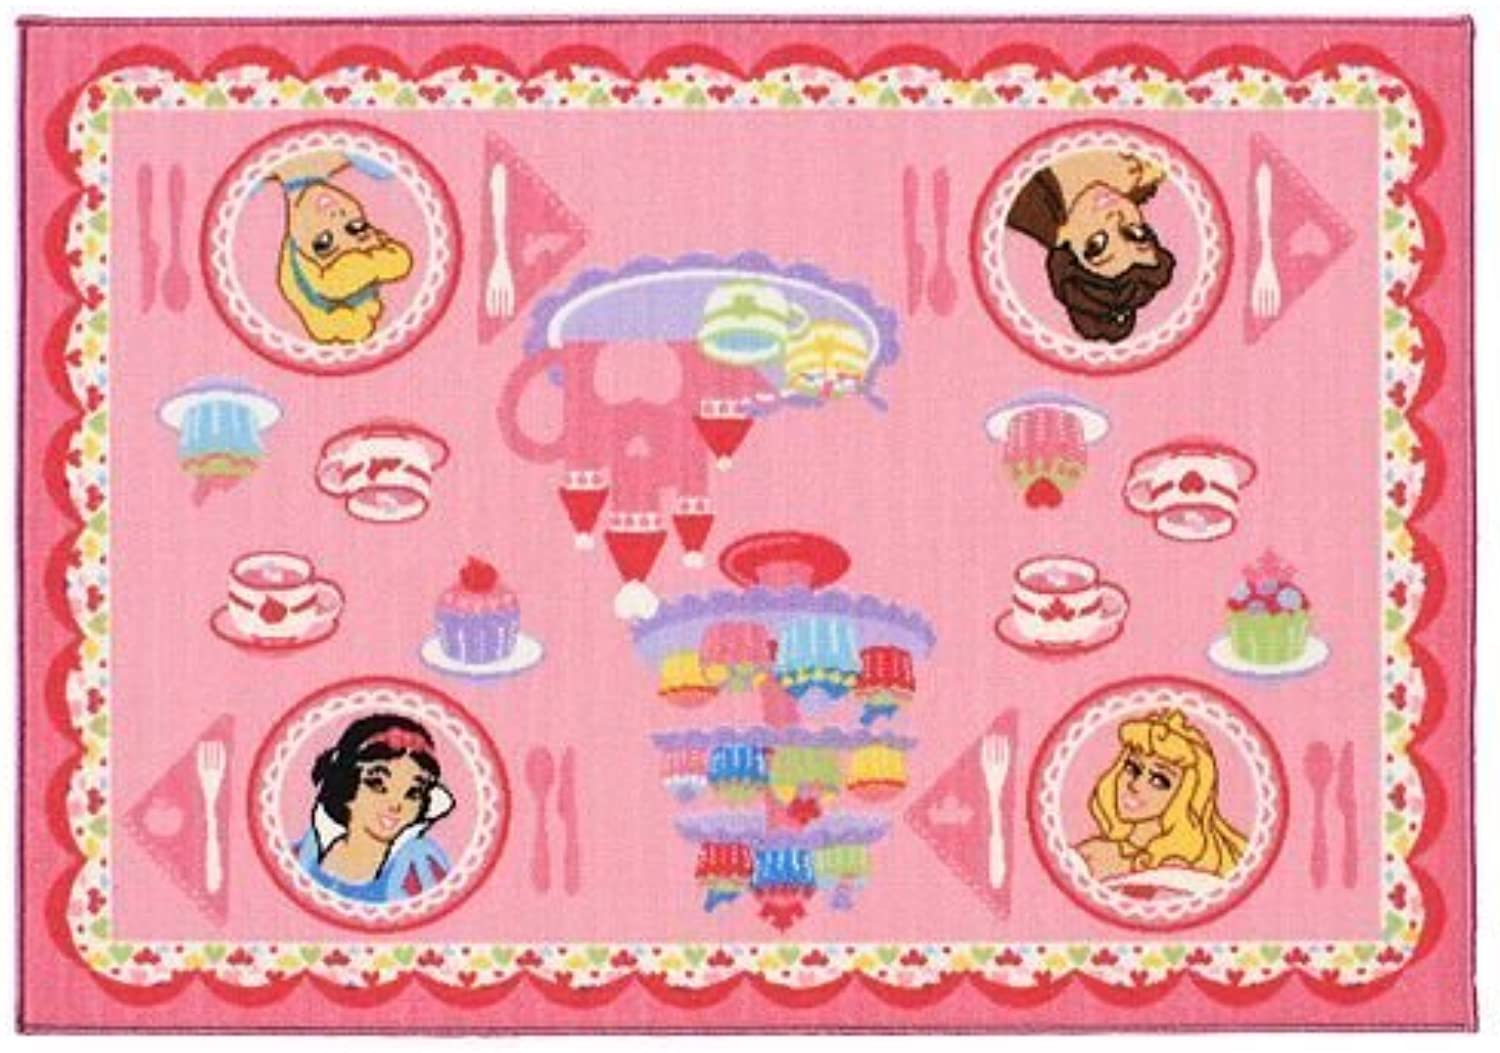 Disney Princess Tea Party Game Rug by G.A. Gertmenian & Sons